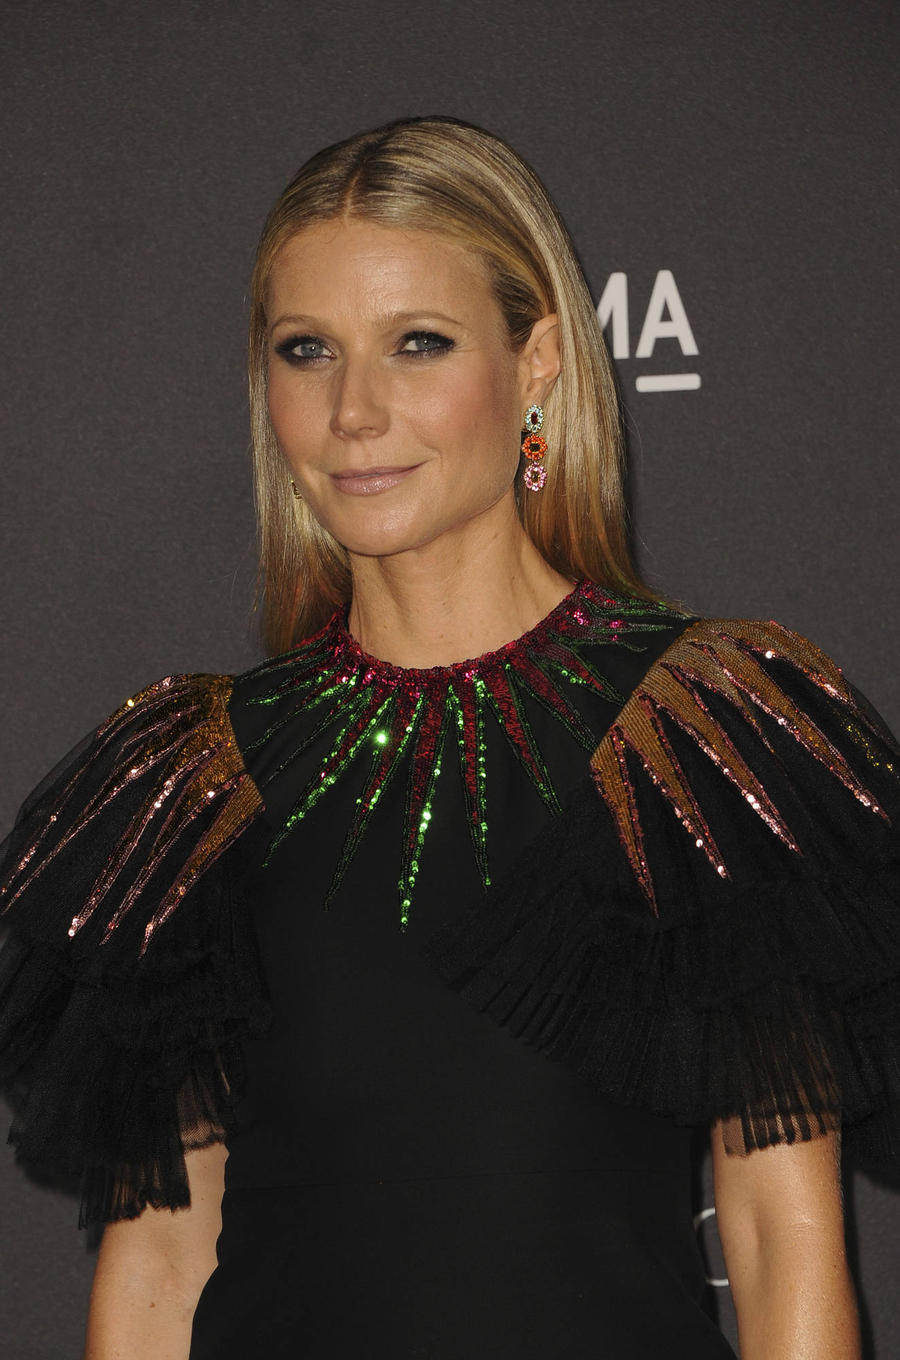 Gwyneth Paltrow's New Perfume Is An Aphrodisiac